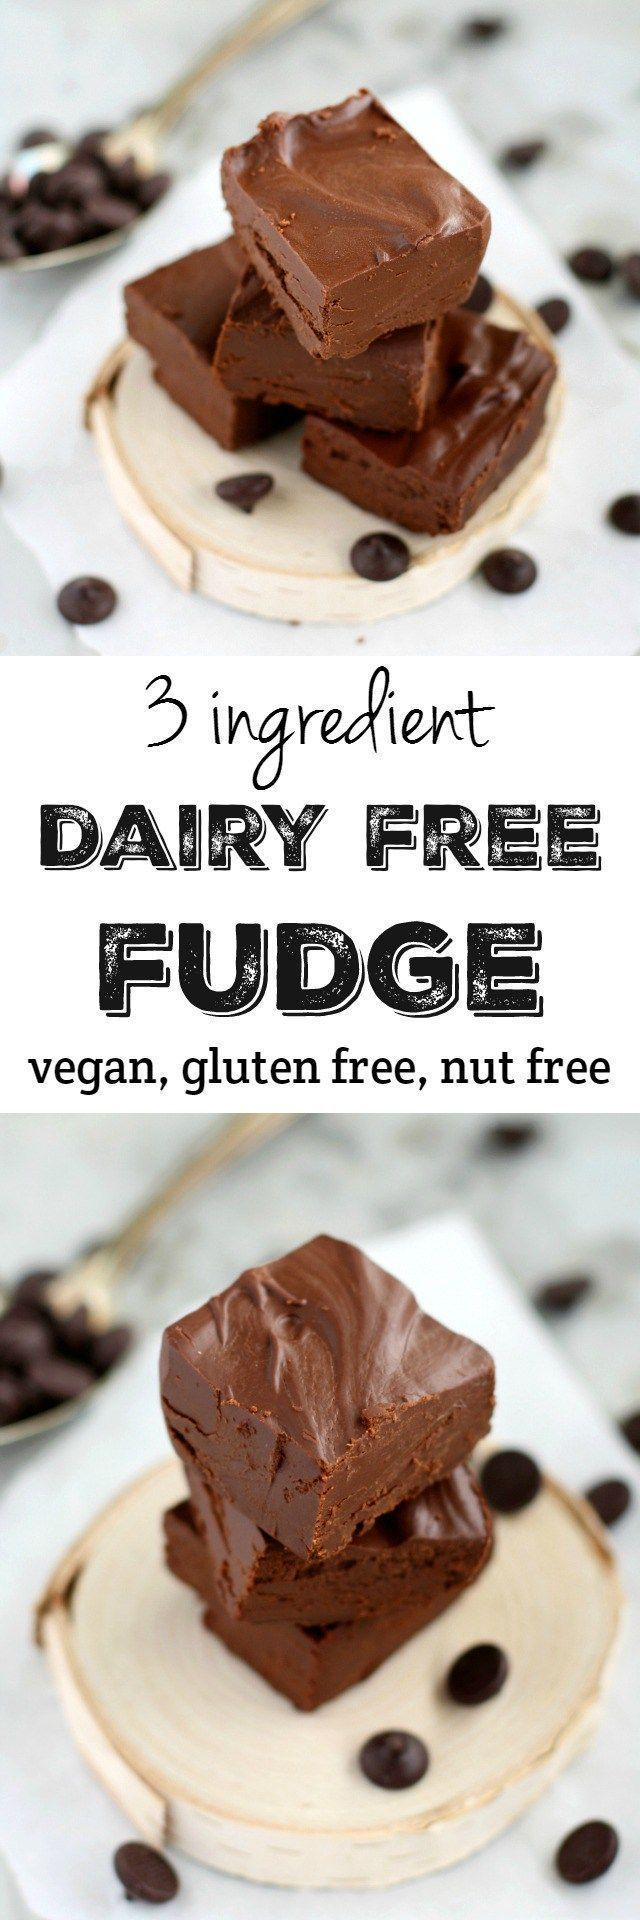 You won't believe how rich, creamy, and delicious this dairy free fudge is! And…